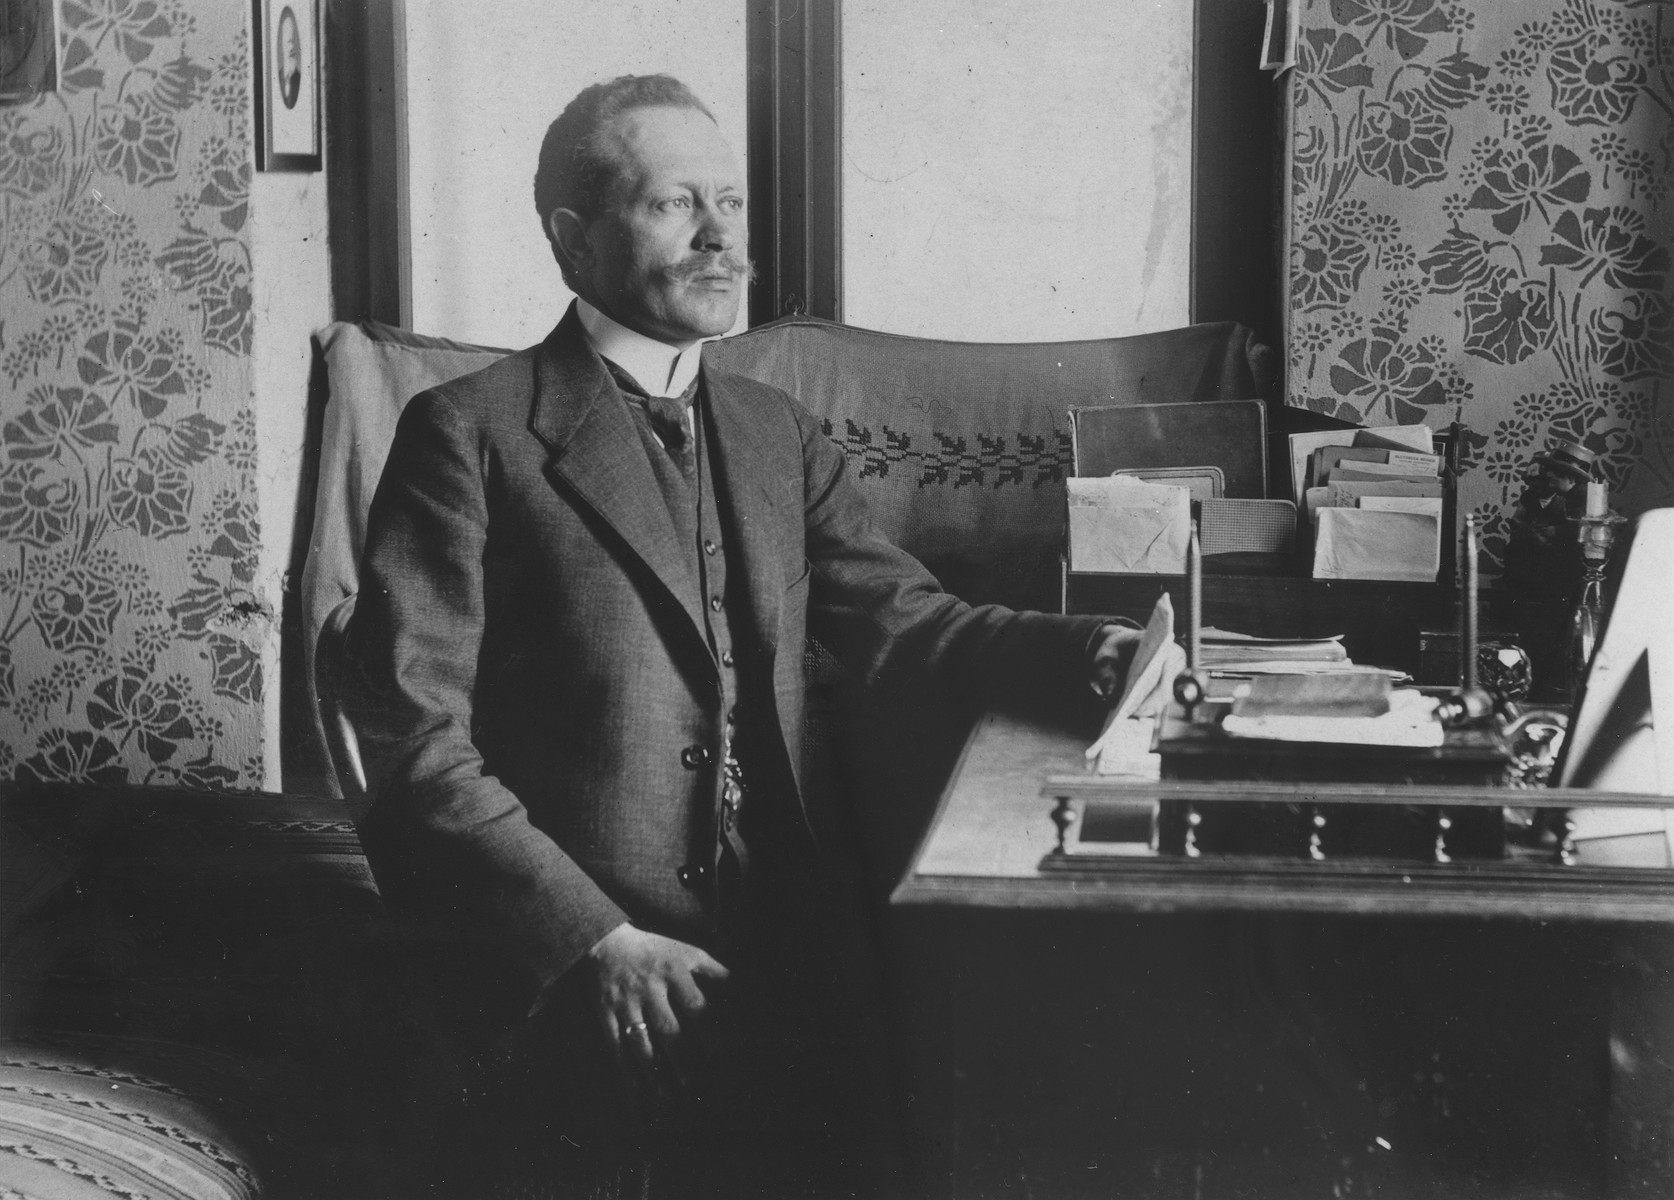 Portrait of Dr. Adolf Huber sitting at his desk in his medical office.